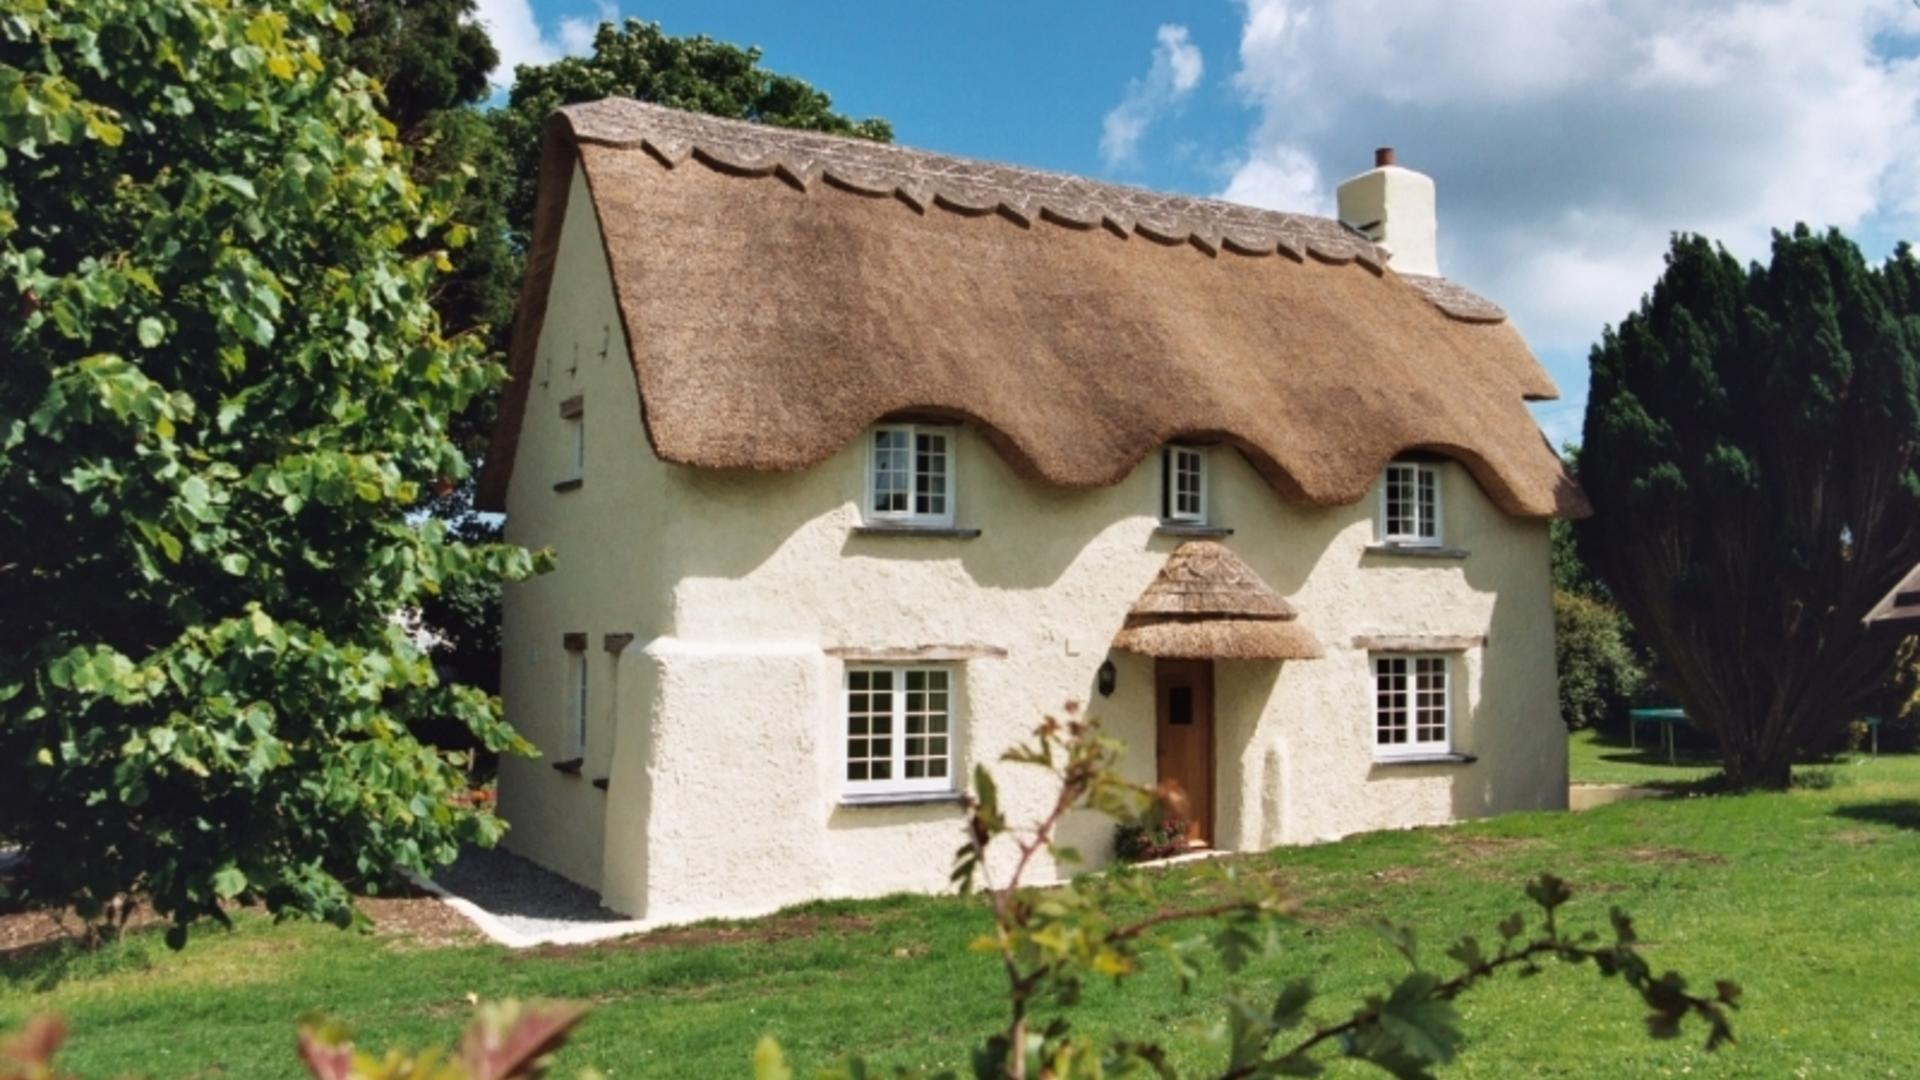 2 bedroom child-friendly holiday cottage in Cornwall - PSCA